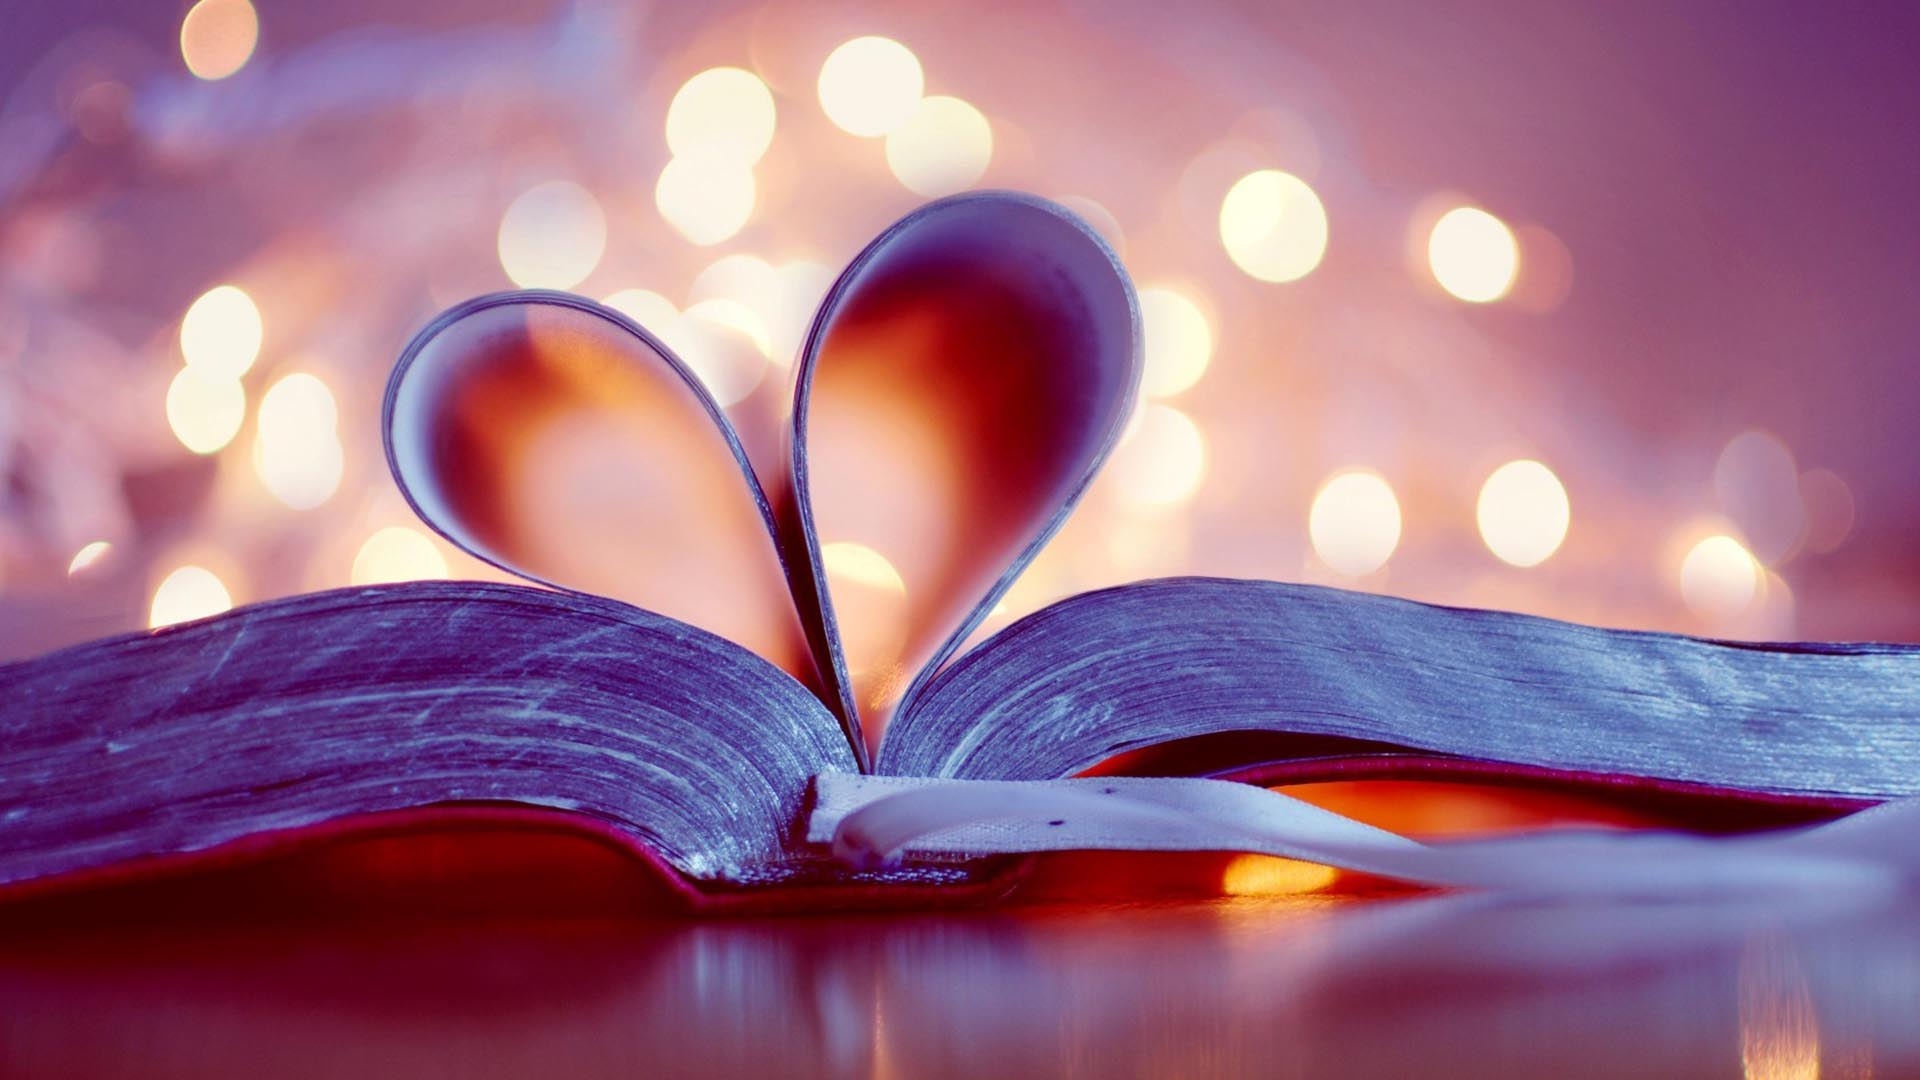 image of a book with pages curled into a heart